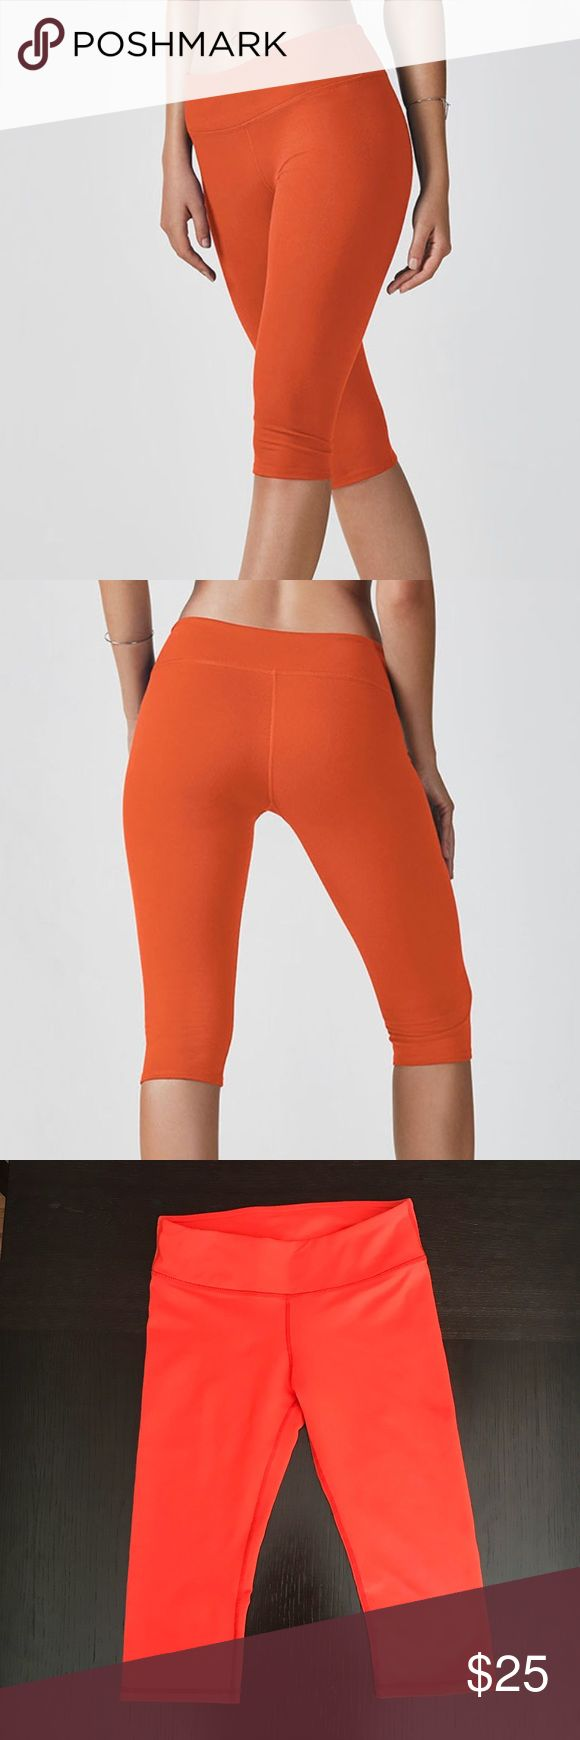 Fabletics Orange Leggings, XS/4 Fabletics Salar Crop. Color: Poppy. Size: XS. Below-the-knee, all-way stretch bottoms. Perfect for high-impact activities like cardio, bootcamp and HIIT. Worn several times, great condition! Beautiful bright color. Bundle and save :) Fabletics Pants Leggings